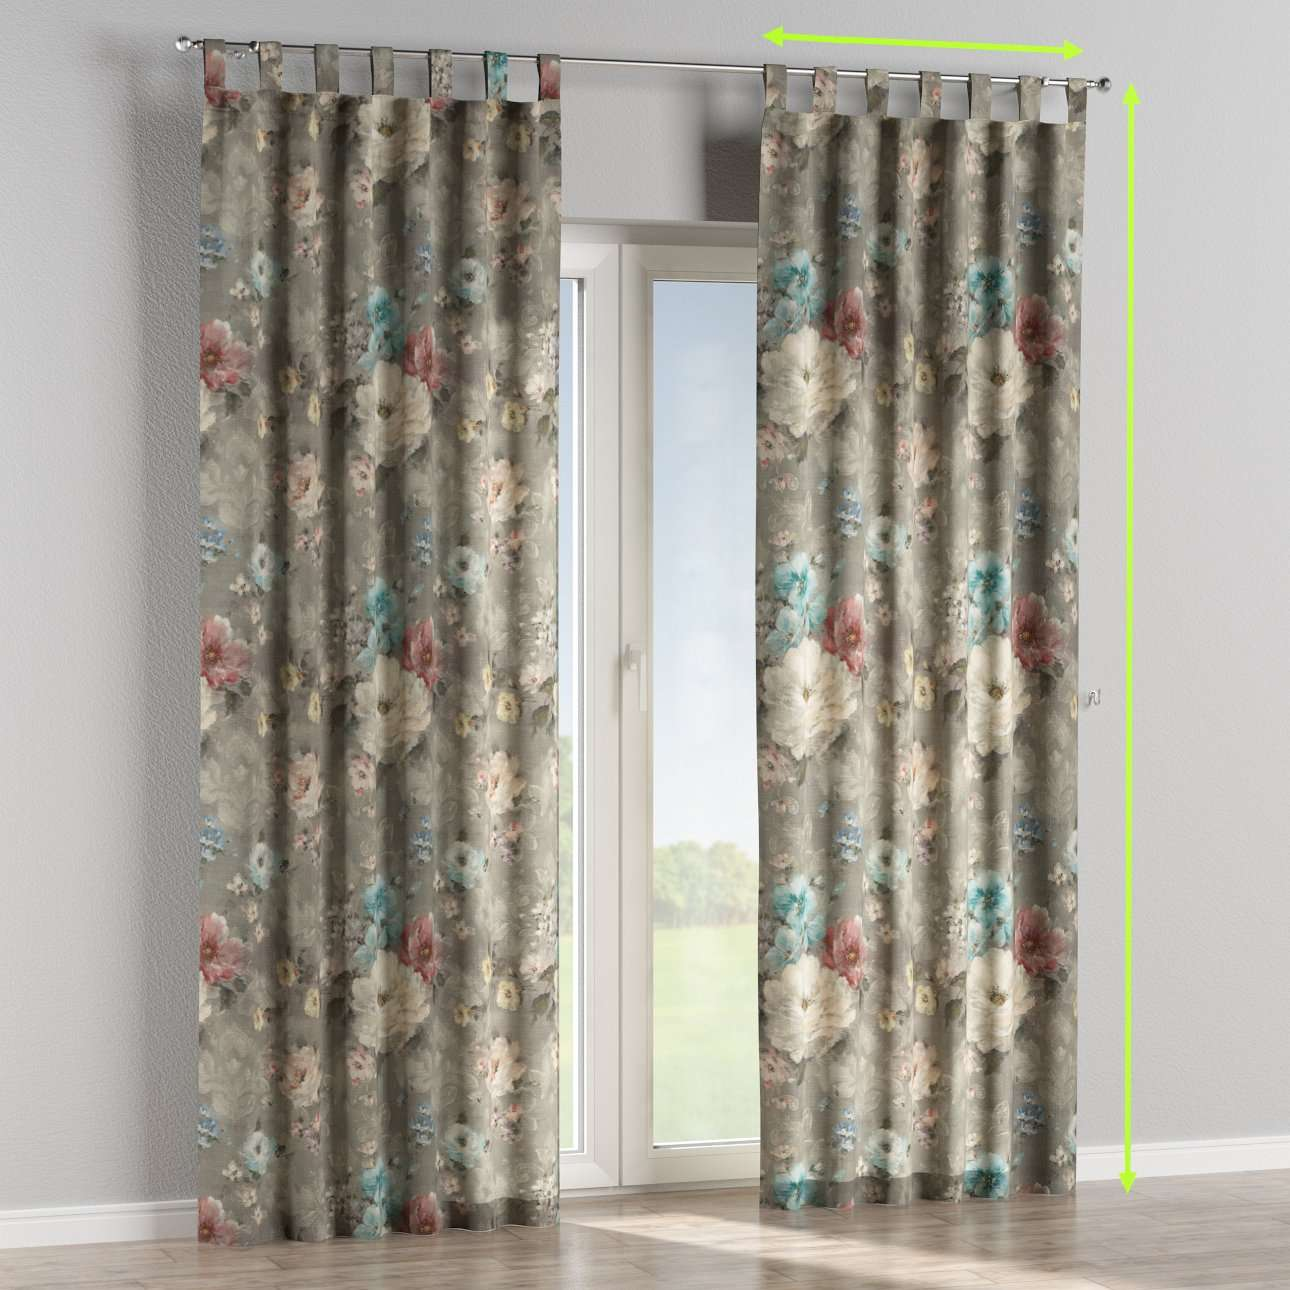 Tab top lined curtains in collection Monet, fabric: 137-81